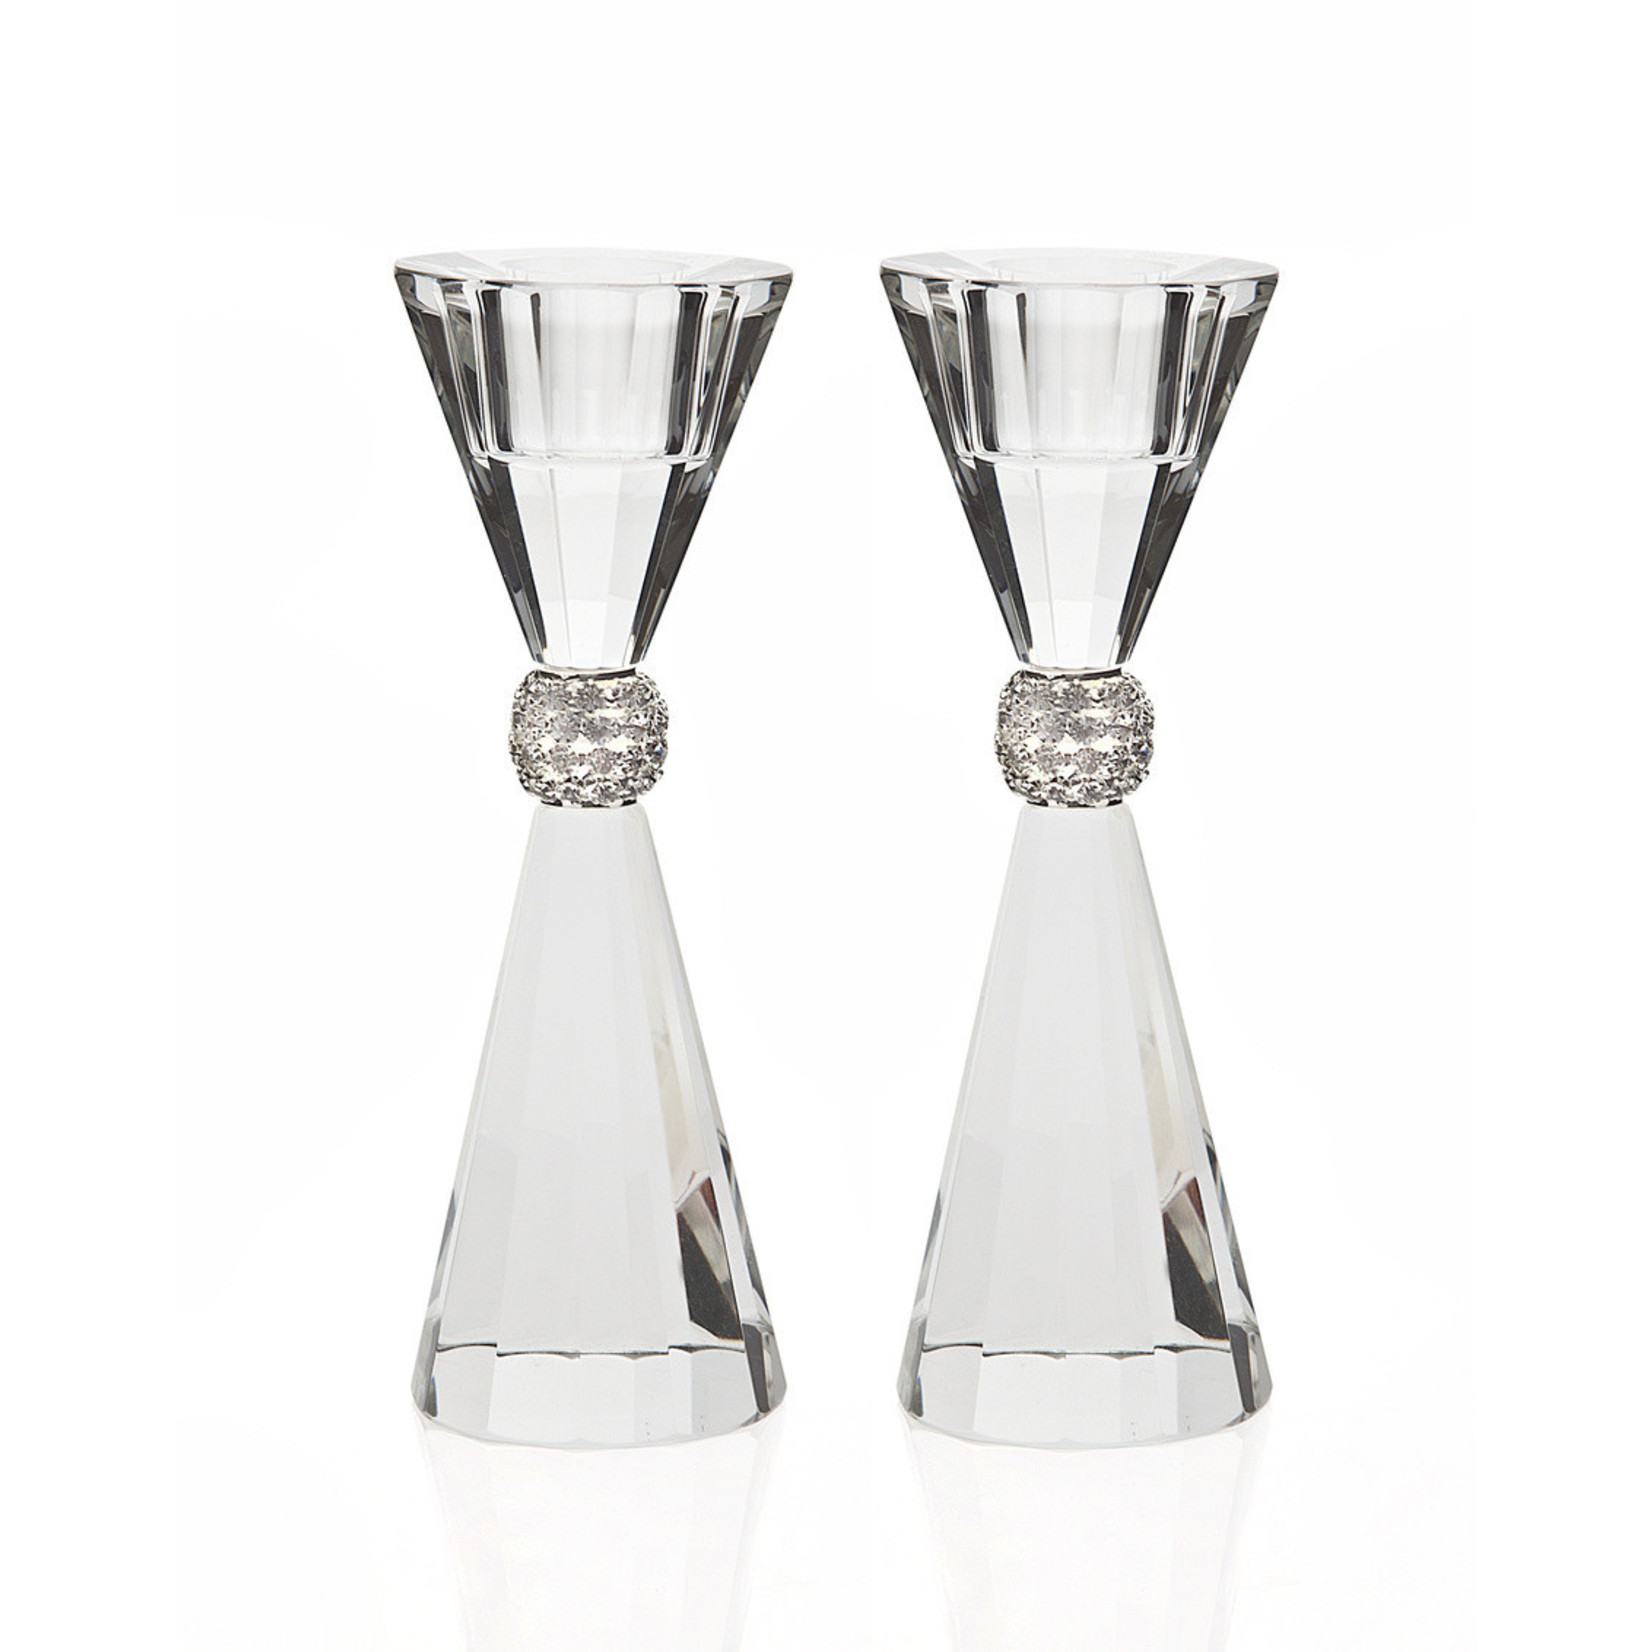 15669 Palazzo 5.5 Bling C/s Candle Sticks